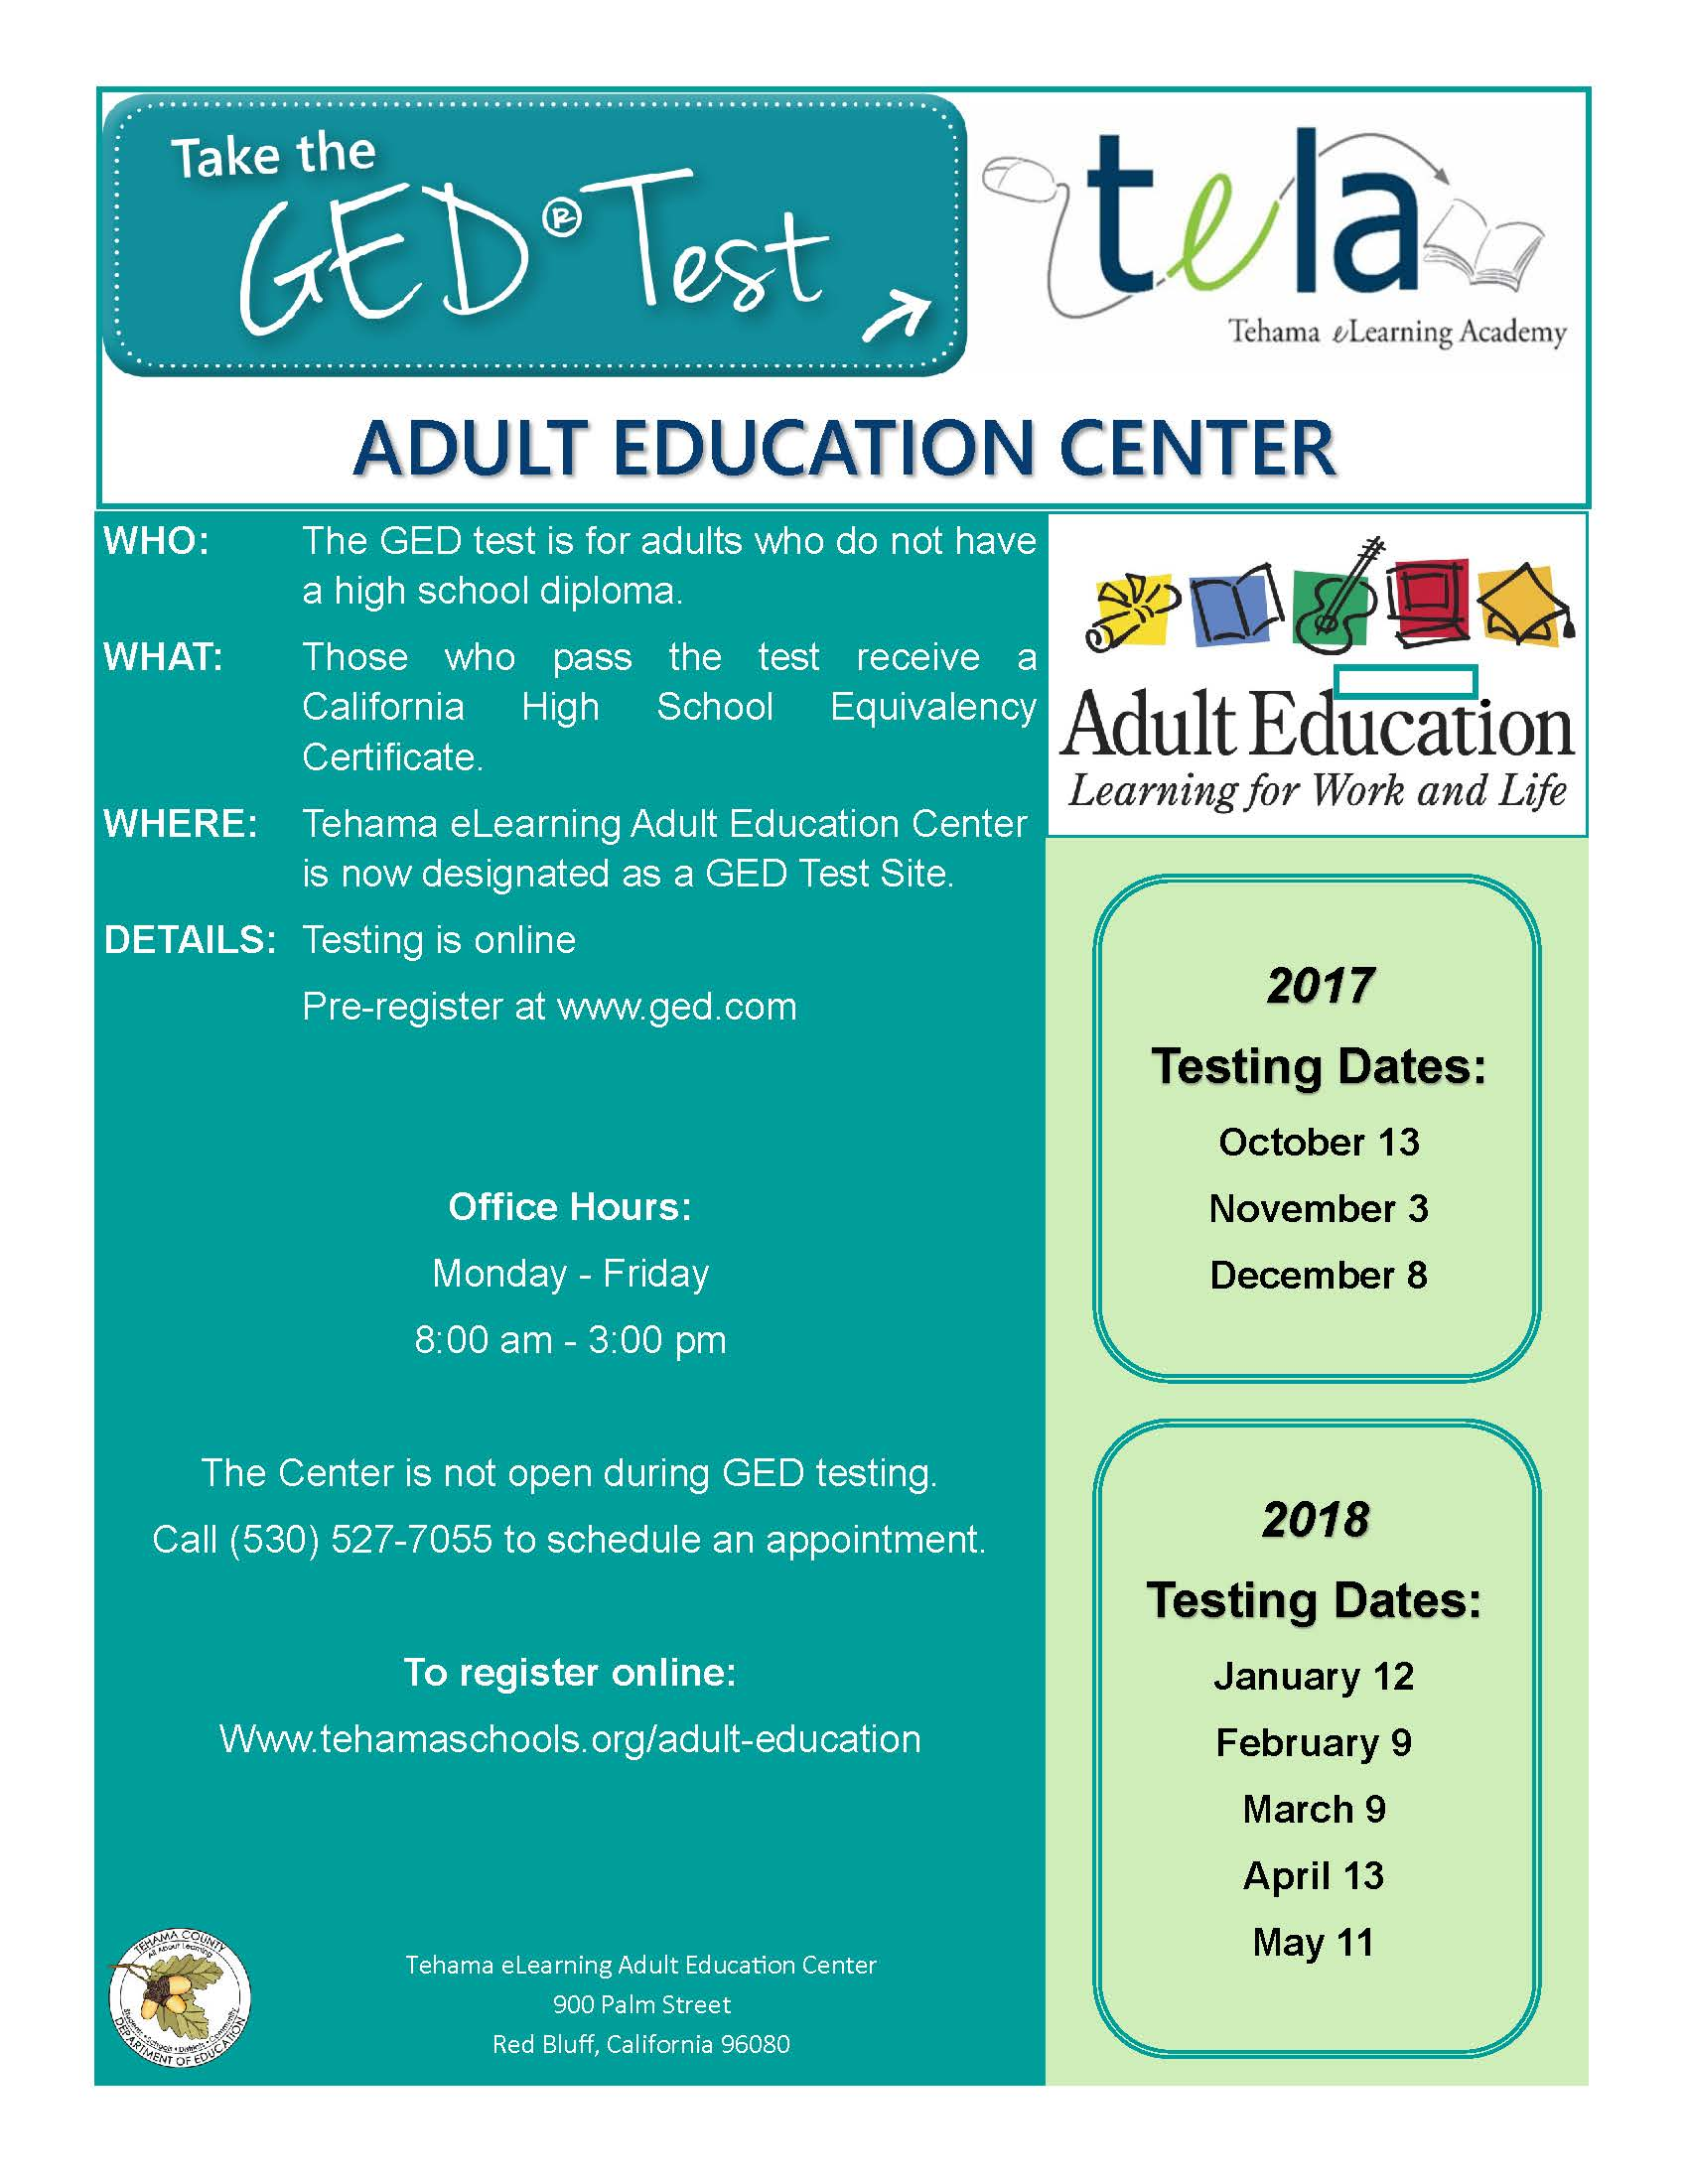 Tela Ged Test Flyer Not Funded By Aebg 17 18